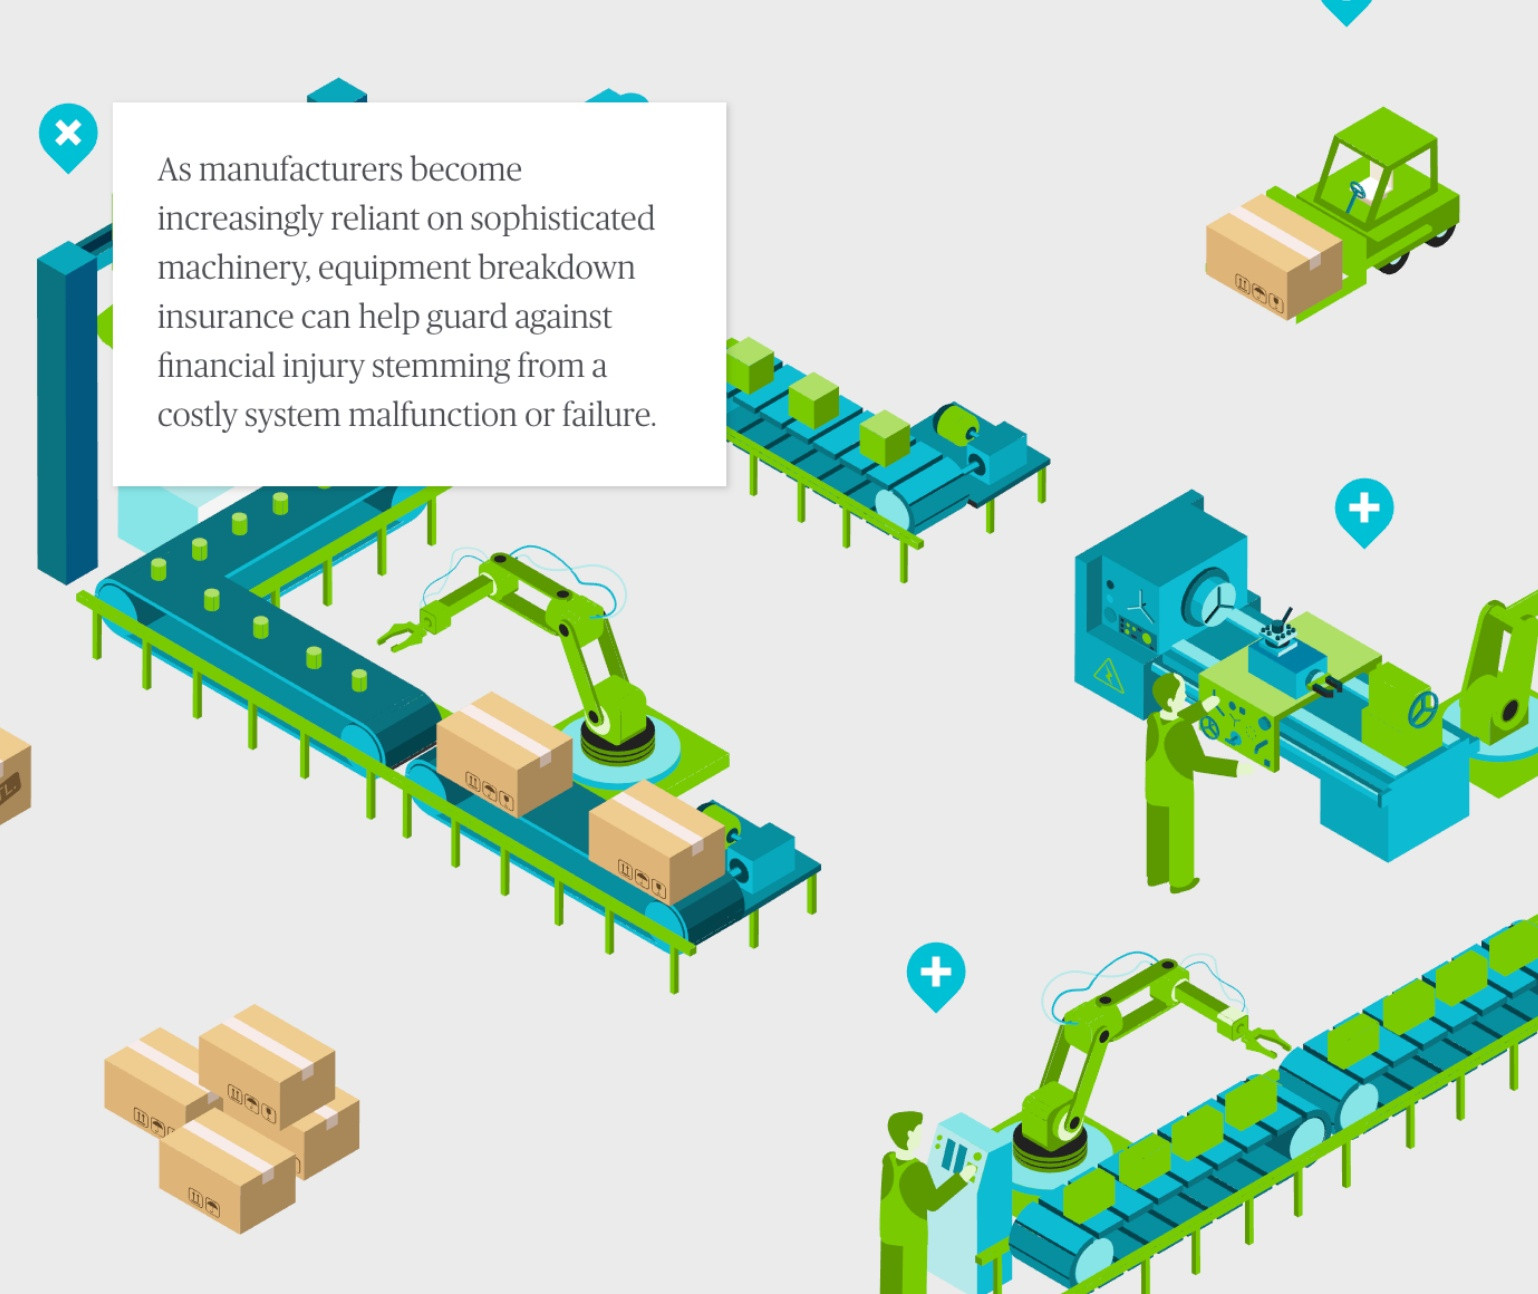 Isometric illustration of a manufacturing line with pop-up information